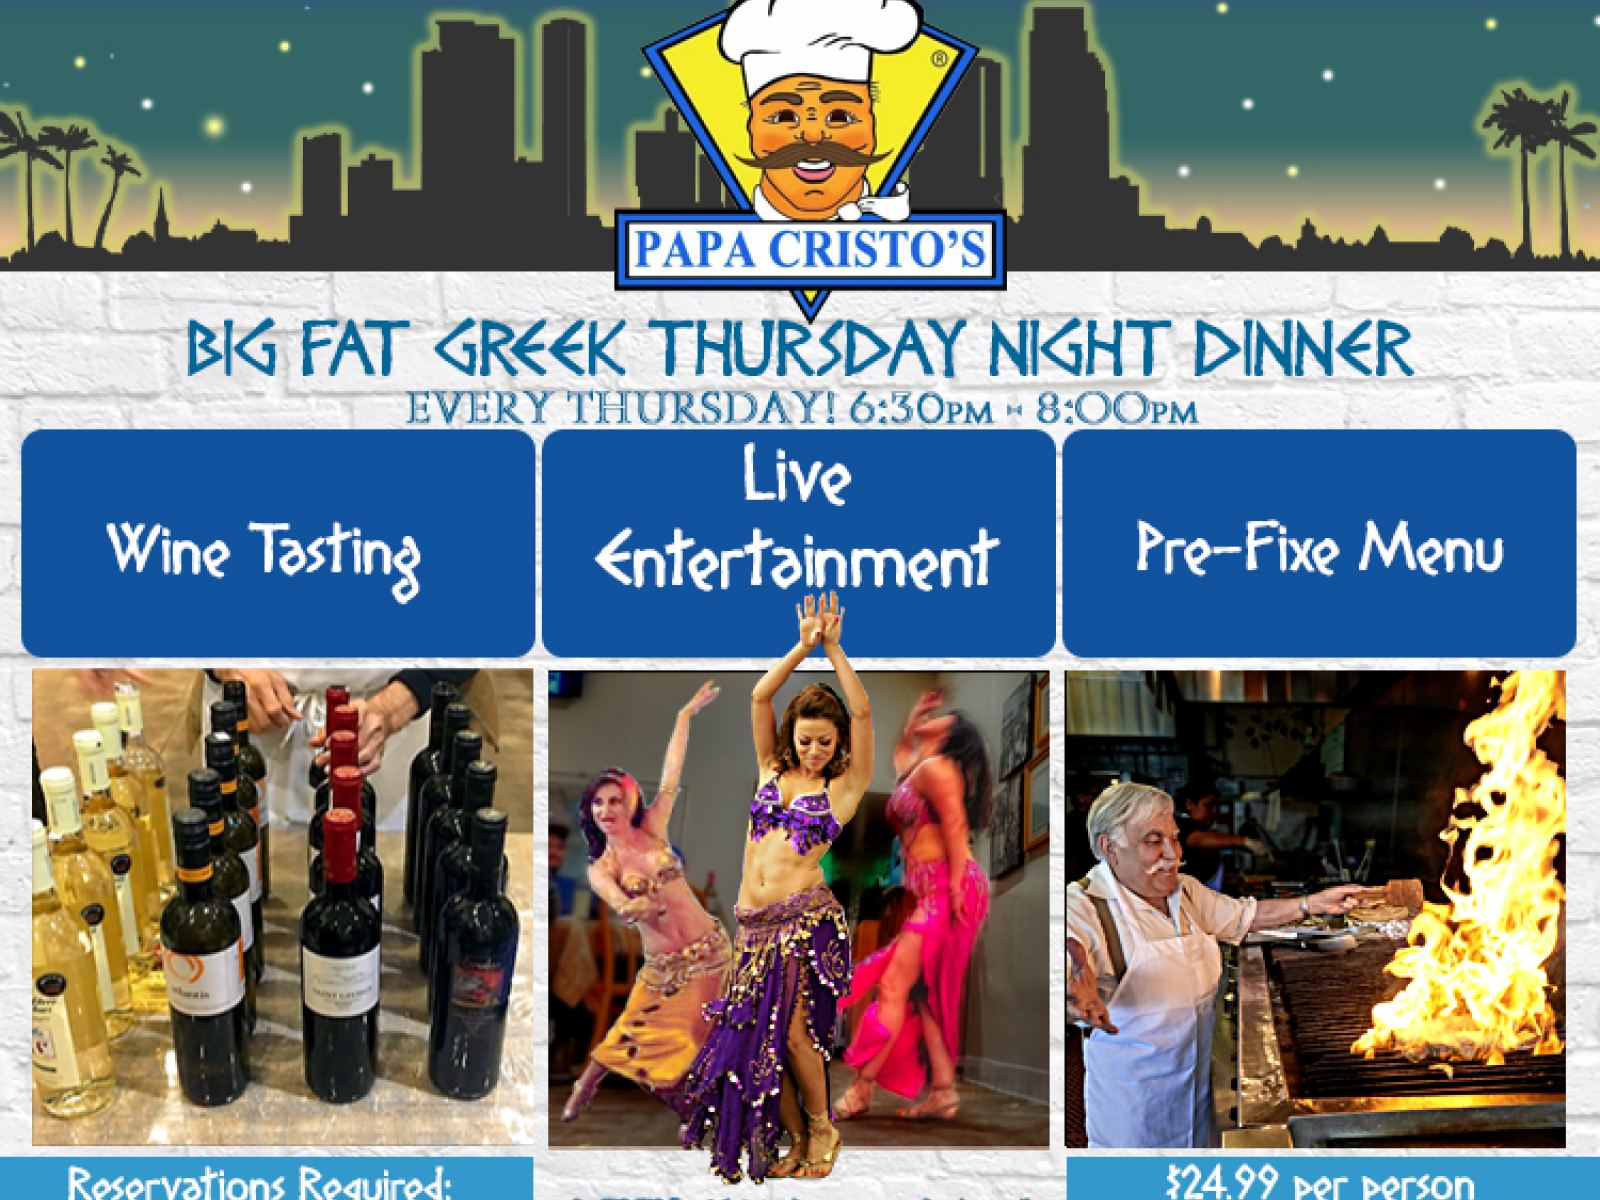 Papa Cristo's Big Fat Greek Thursday Night Dinner